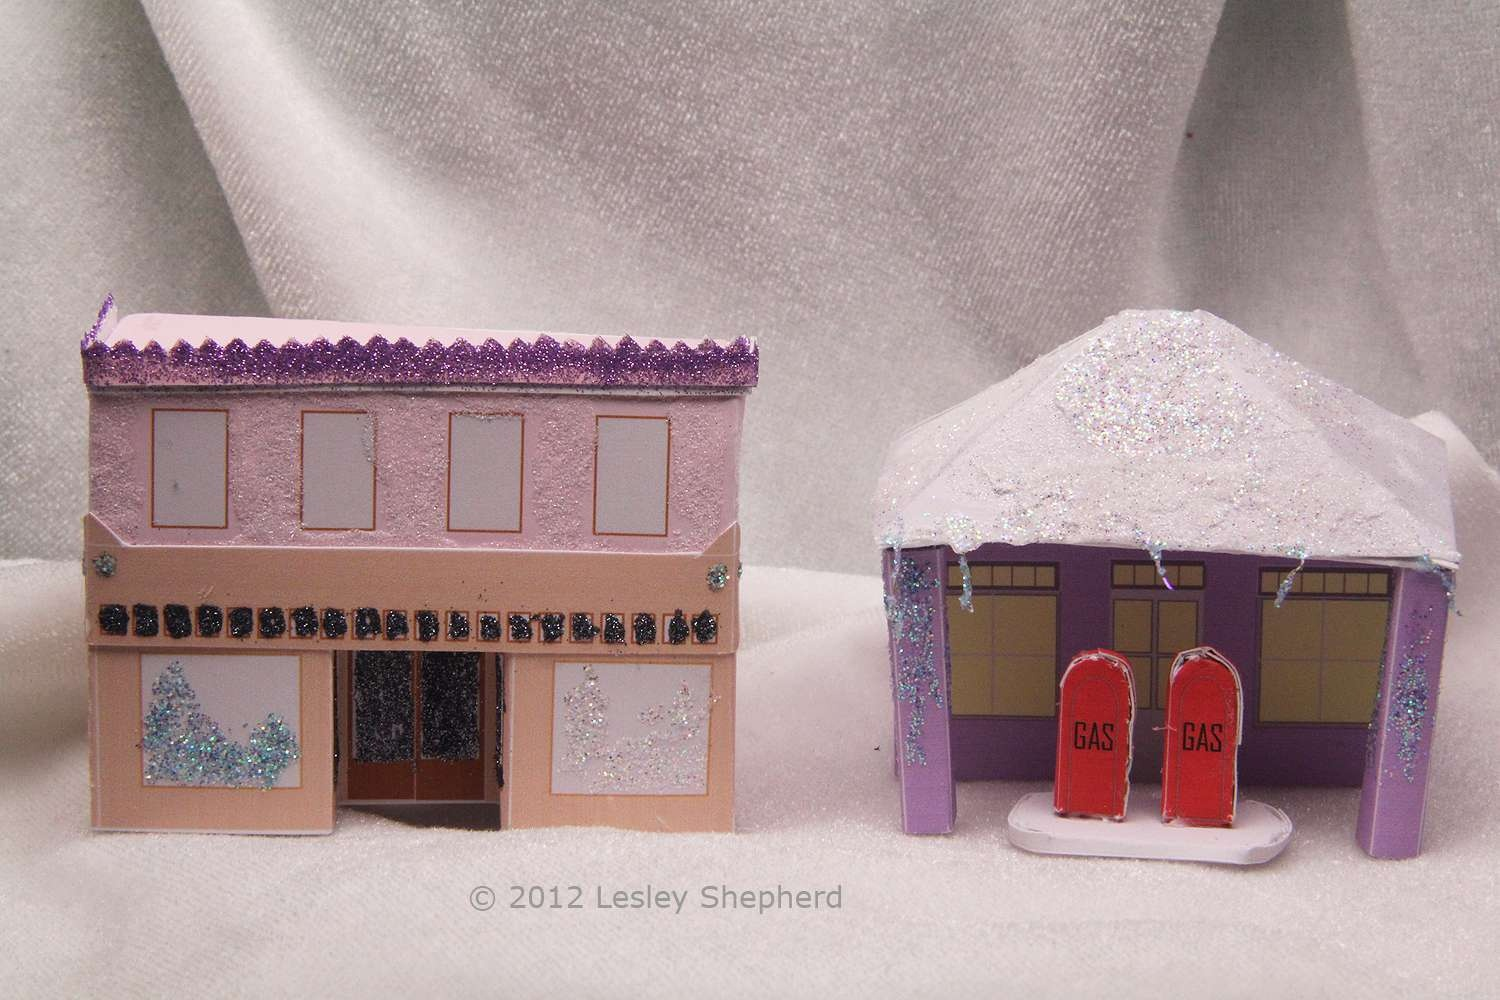 Online Resources For Free Printable Miniature Buildings - Free Printable Model Railway Buildings